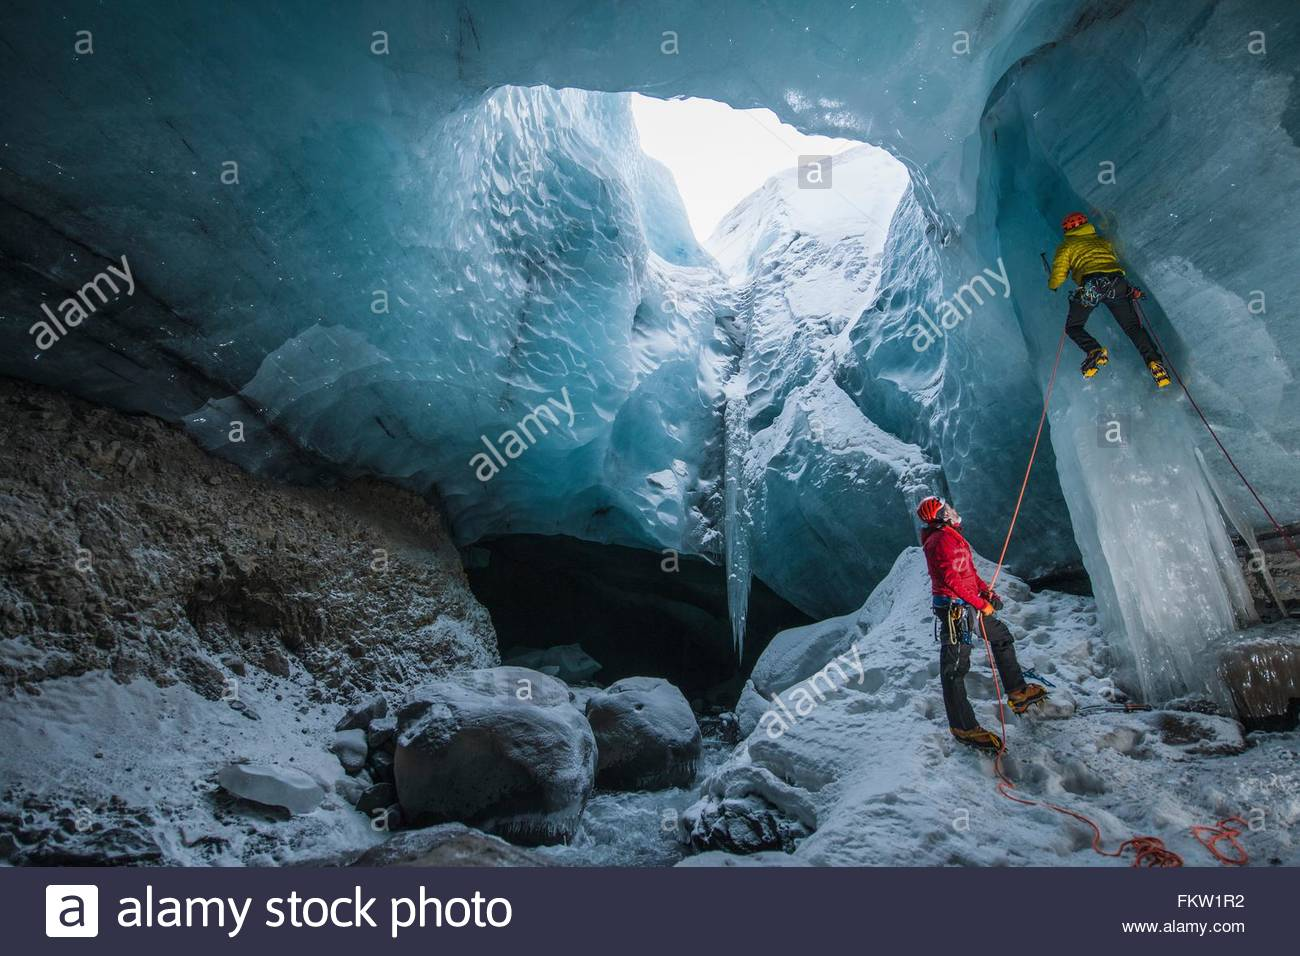 Two ice climbers climbing up ice cave below the Gigjokull glacier, Thorsmork, Iceland - Stock Image